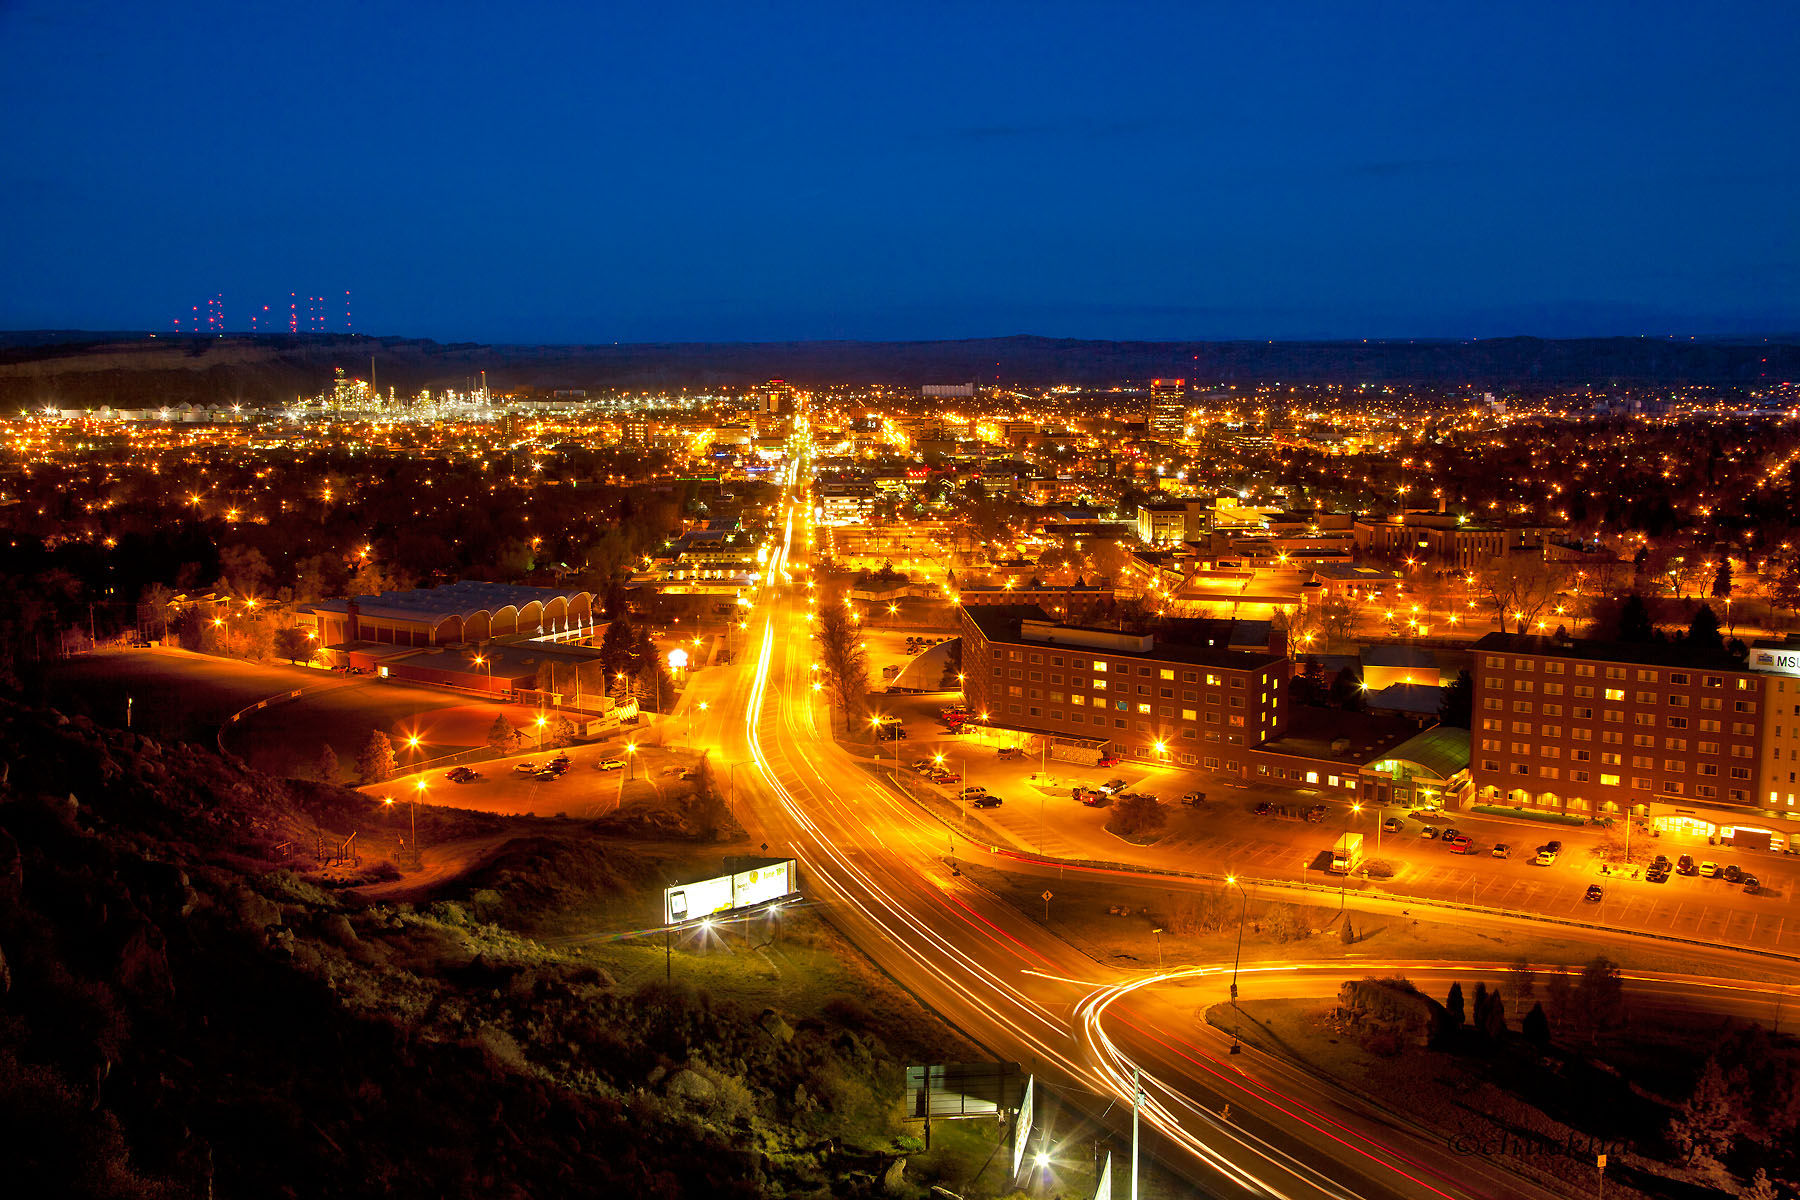 things to do in billings mt at night